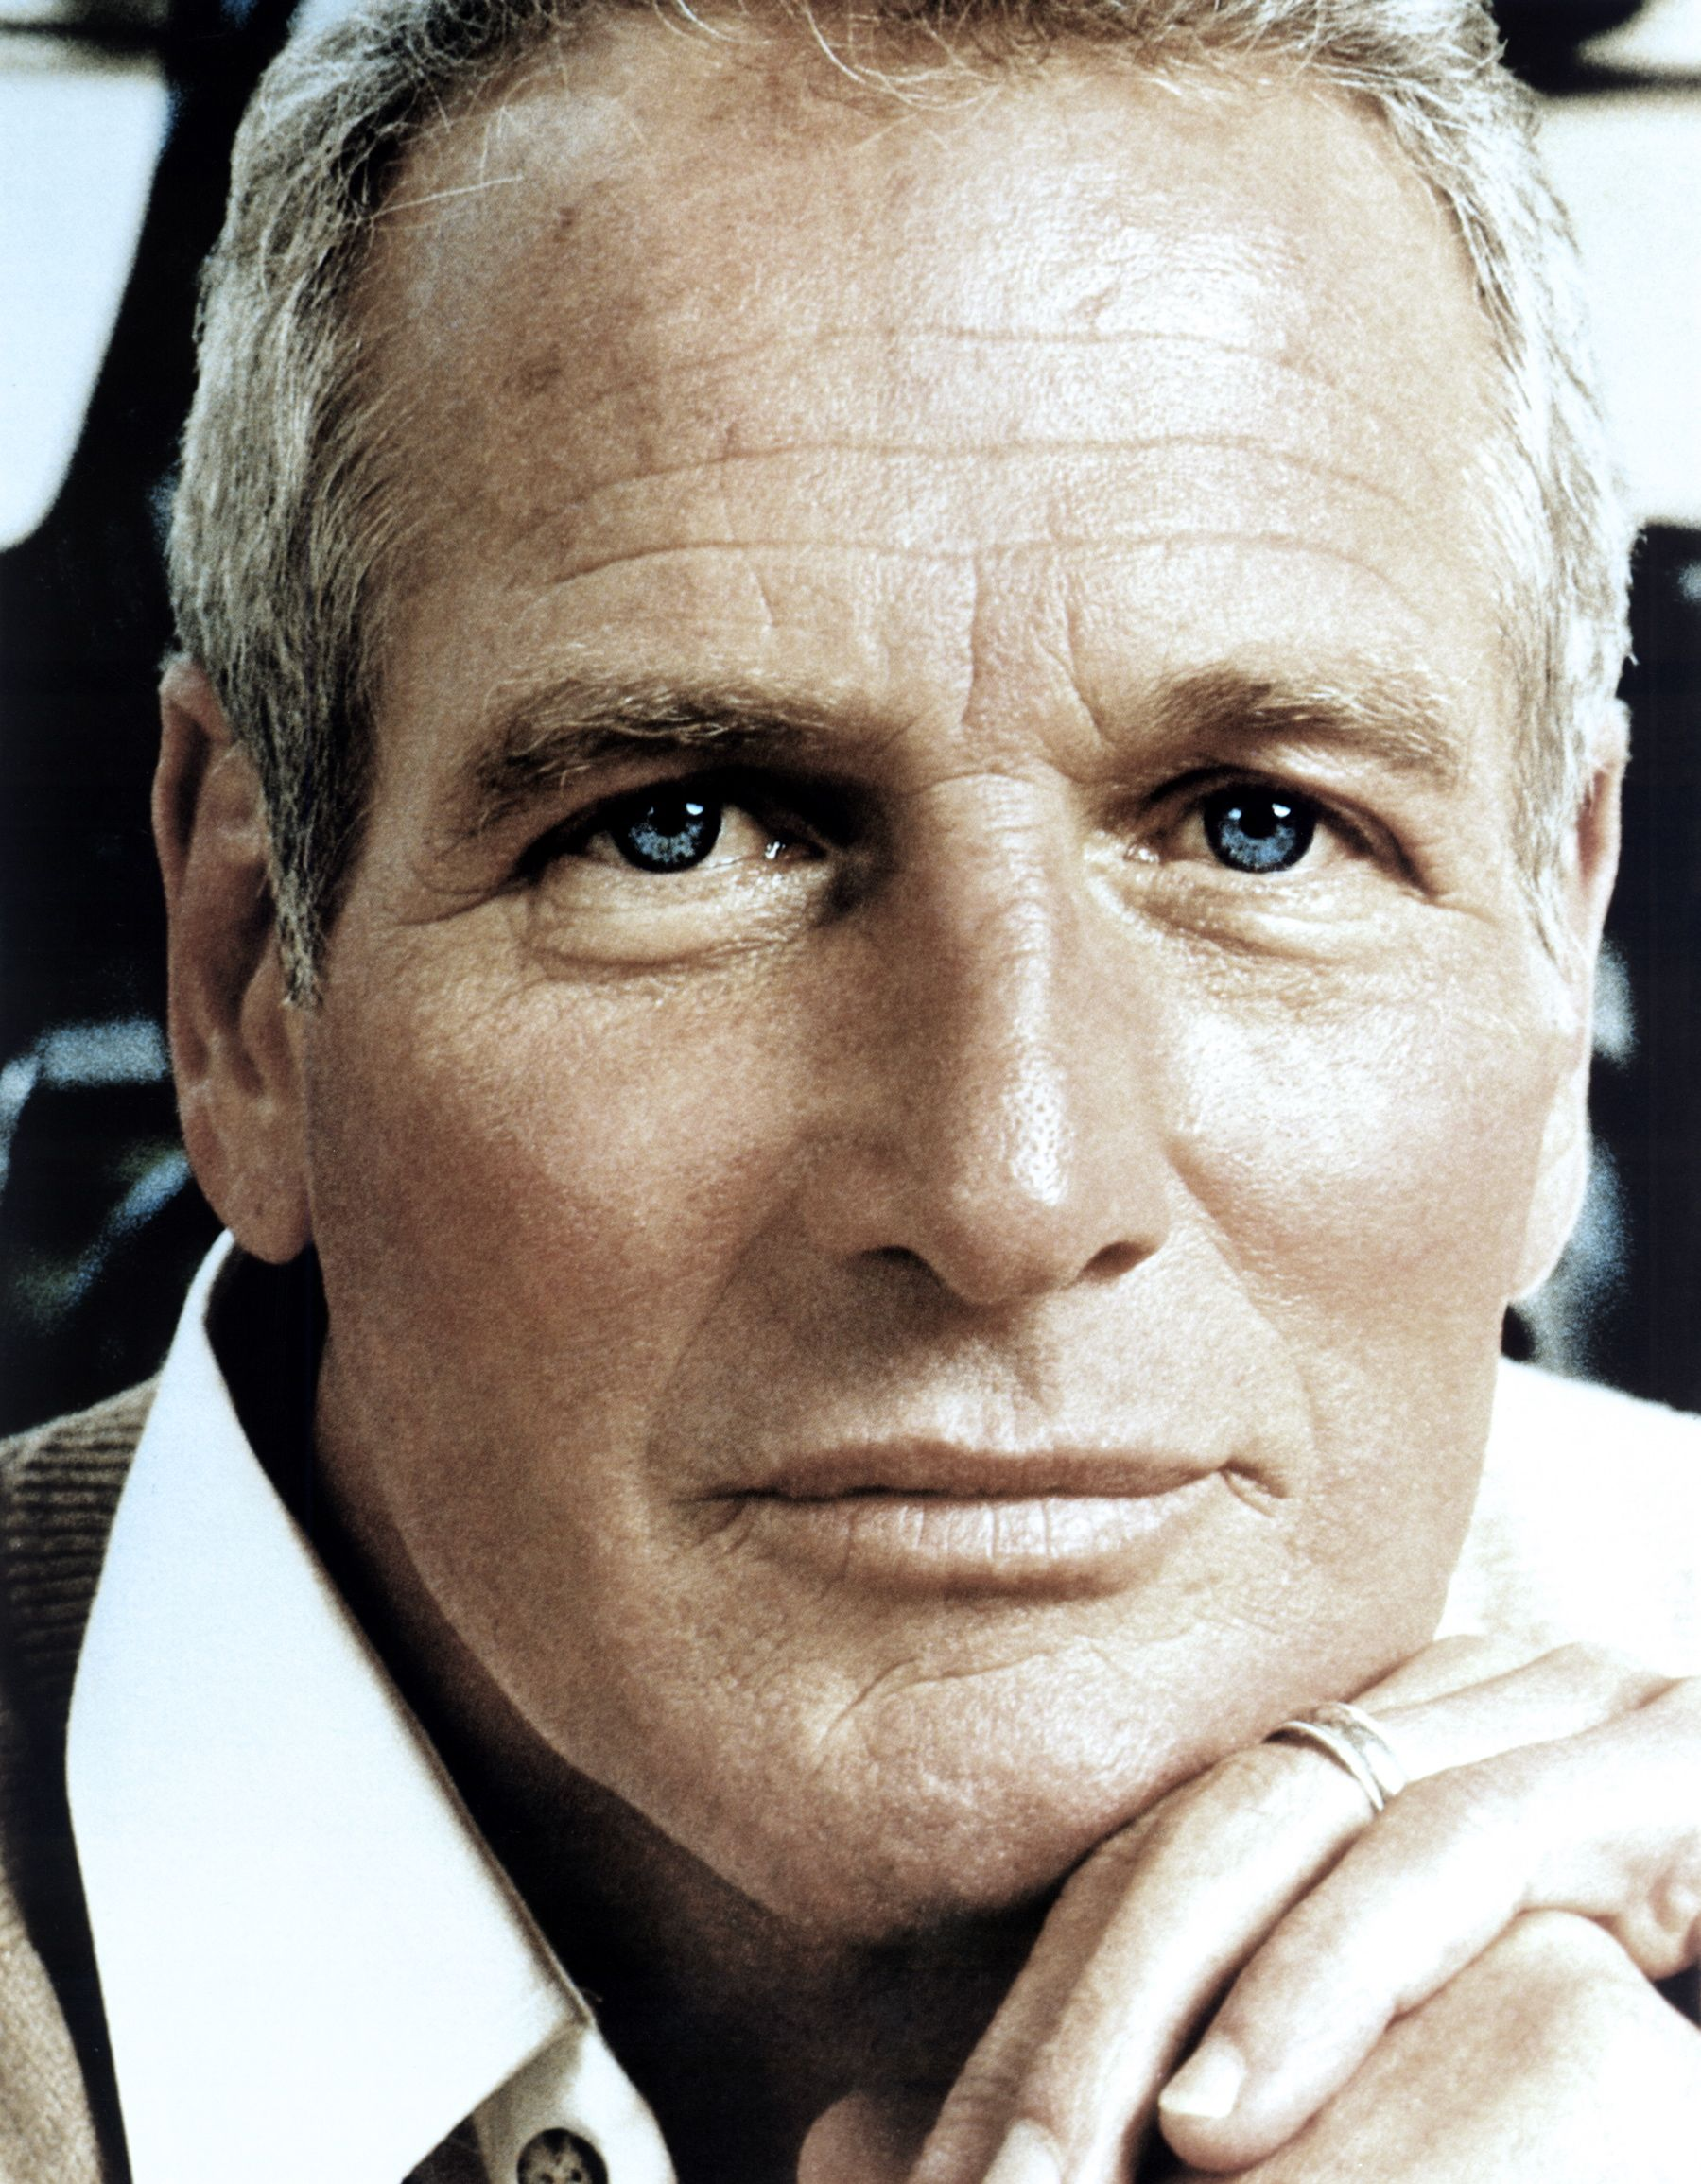 paul newman daughterpaul newman young, paul newman movies, paul newman oscar, paul newman style, paul newman beard, paul newman wiki, paul newman 2008, paul newman kinopoisk, paul newman watch, paul newman rolex daytona, paul newman gif, paul newman music, paul newman imdb, paul newman wikipedia, paul newman natal chart, paul newman venice, paul newman daughter, paul newman robert redford movie, paul newman best photos, paul newman kibbe